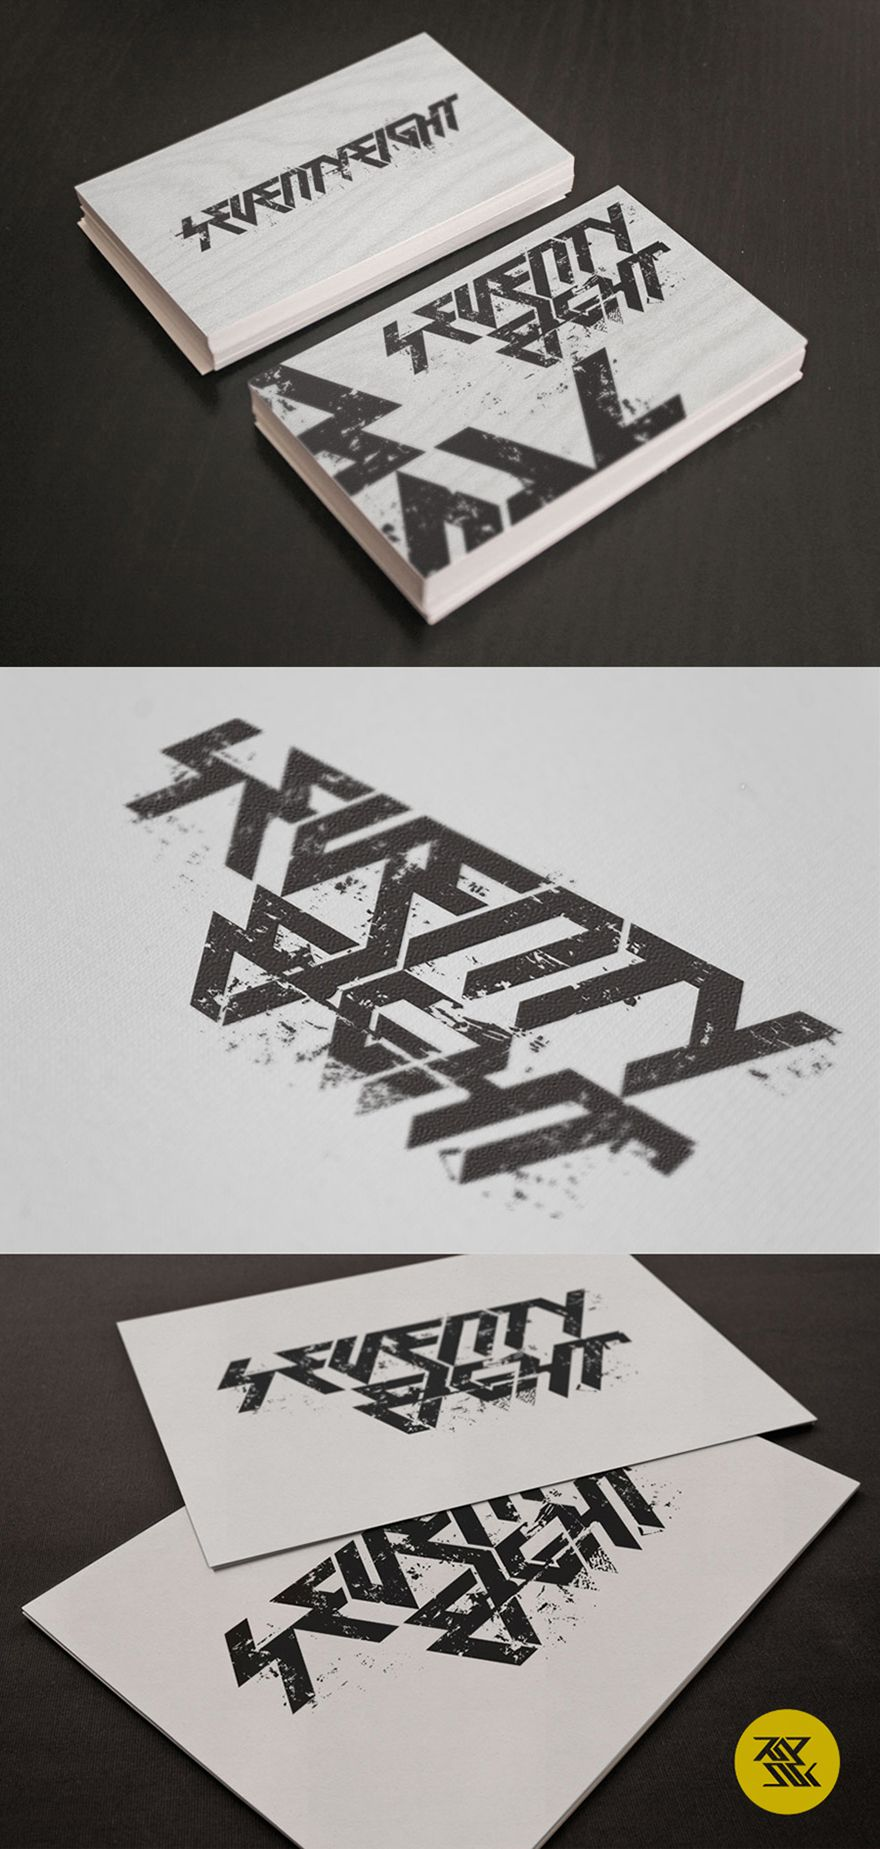 20 examples of creative business card ideas fyp mood board seventy eight business card grunge rock punk style colourmoves